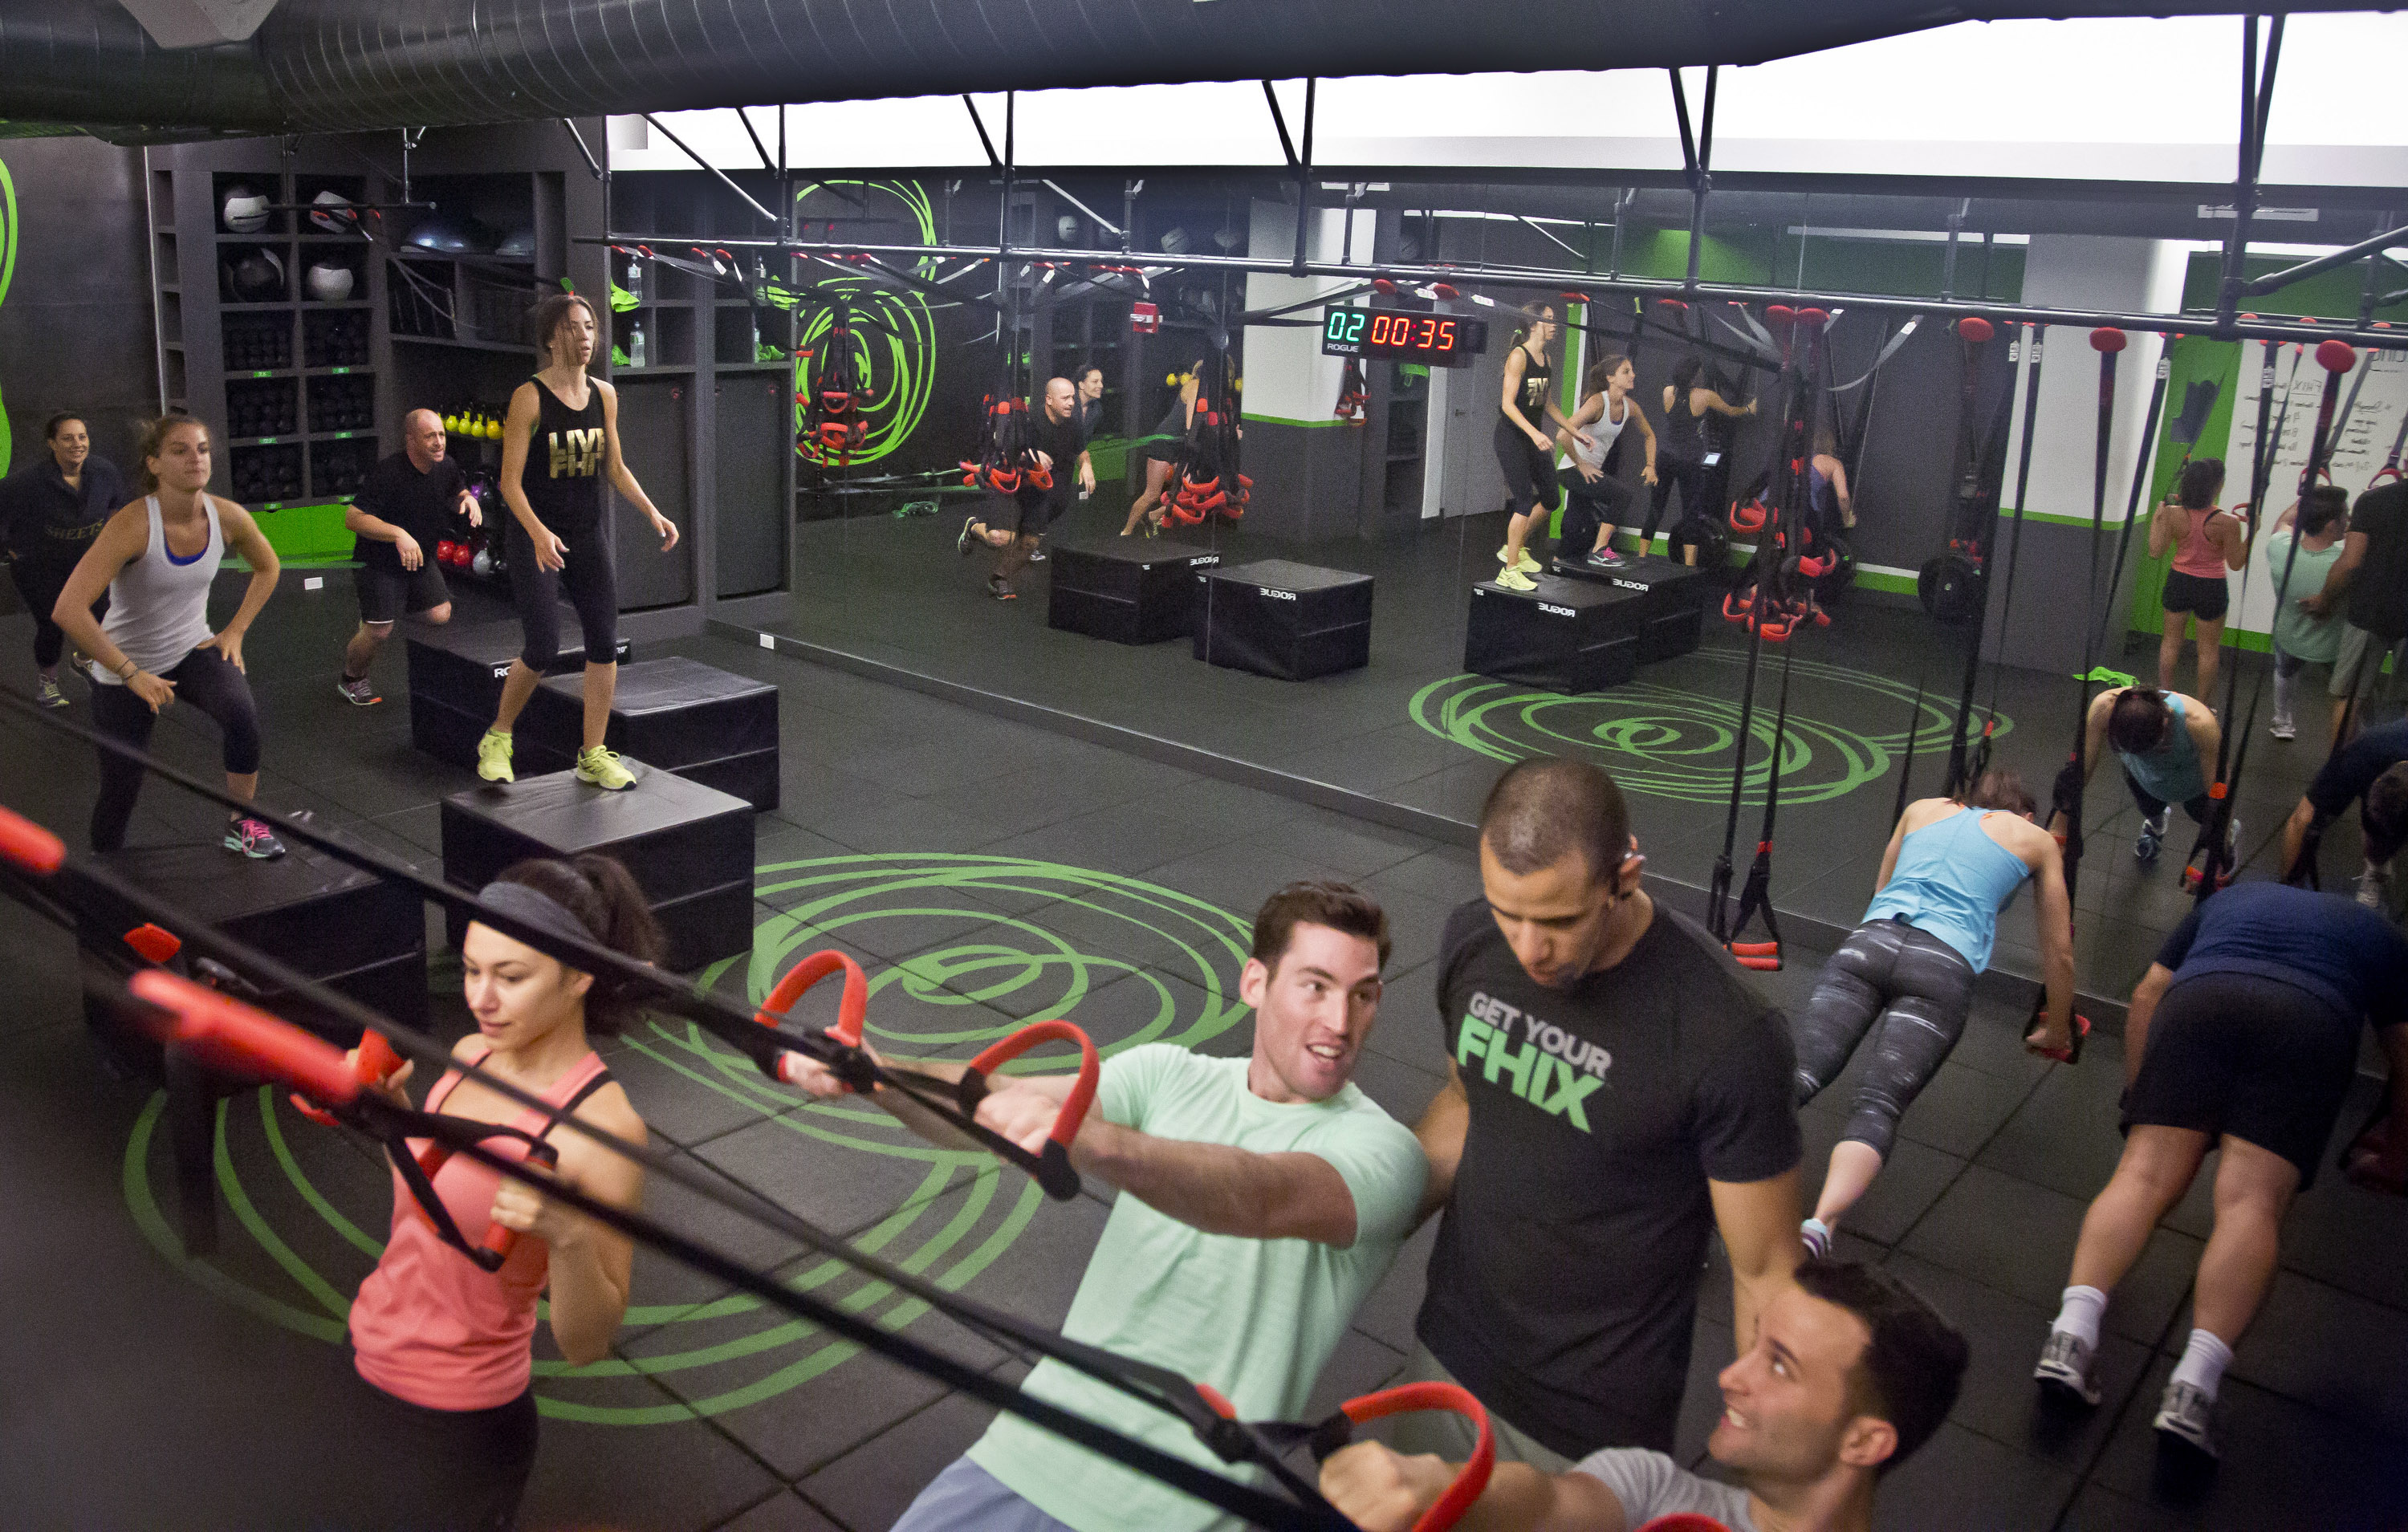 Trim gyms turn fitness fans into small-business owners | The ...